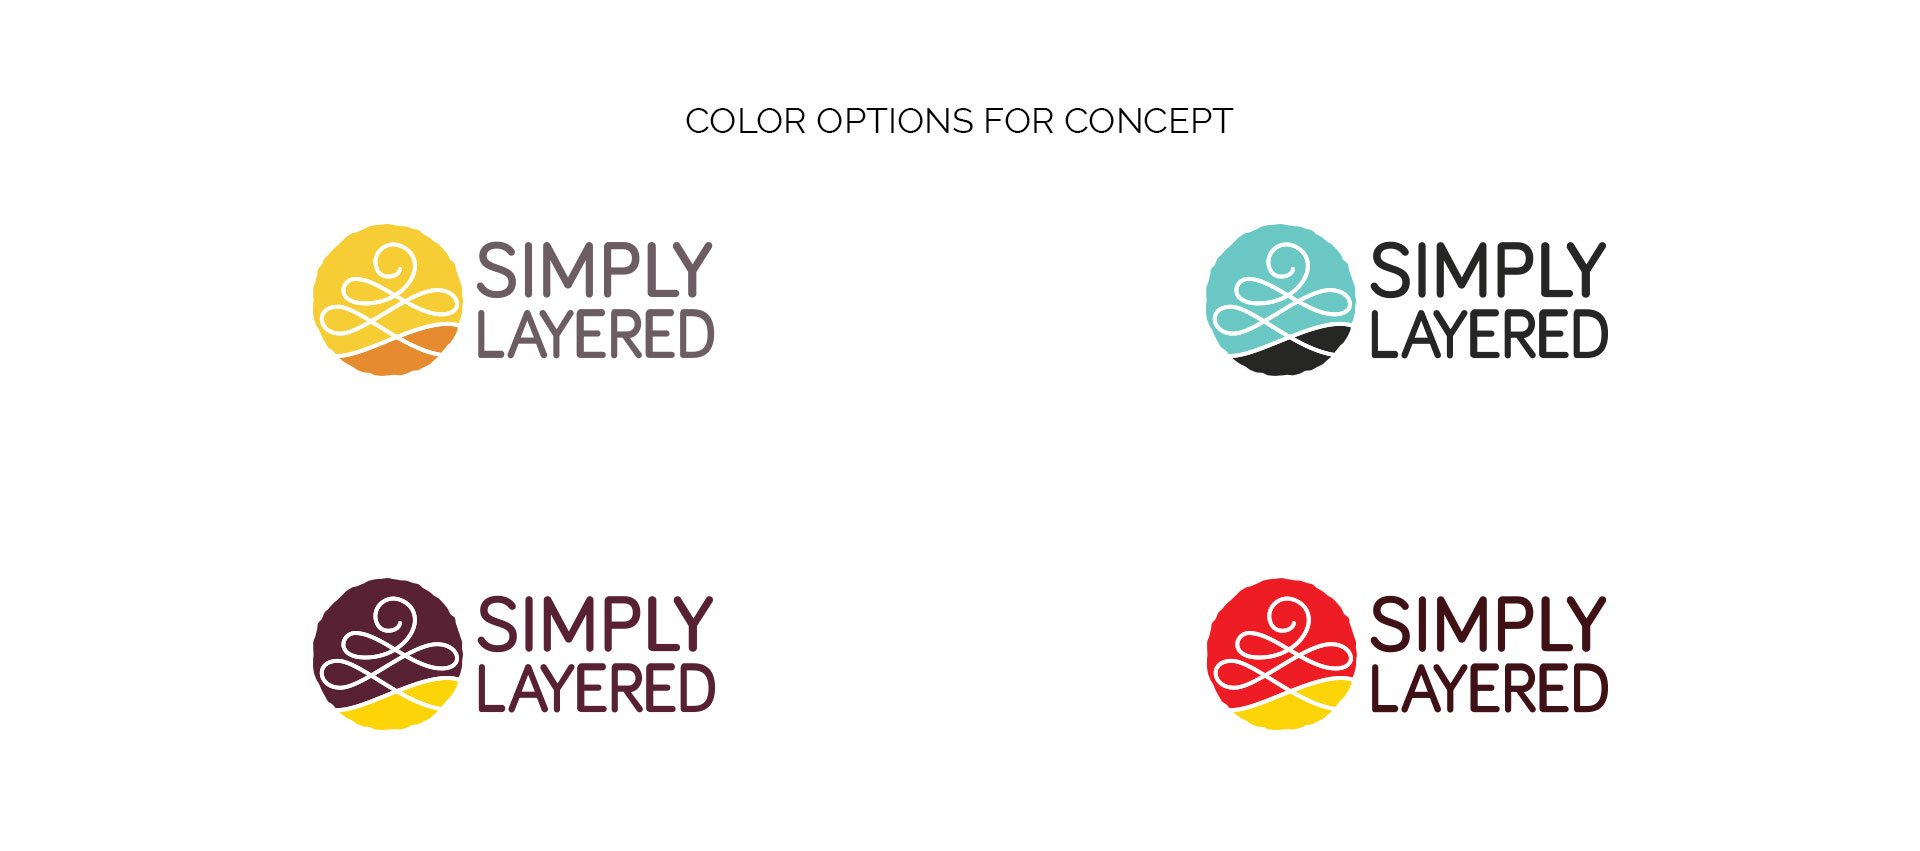 Simply-Layered-logo-concepts-slide-3